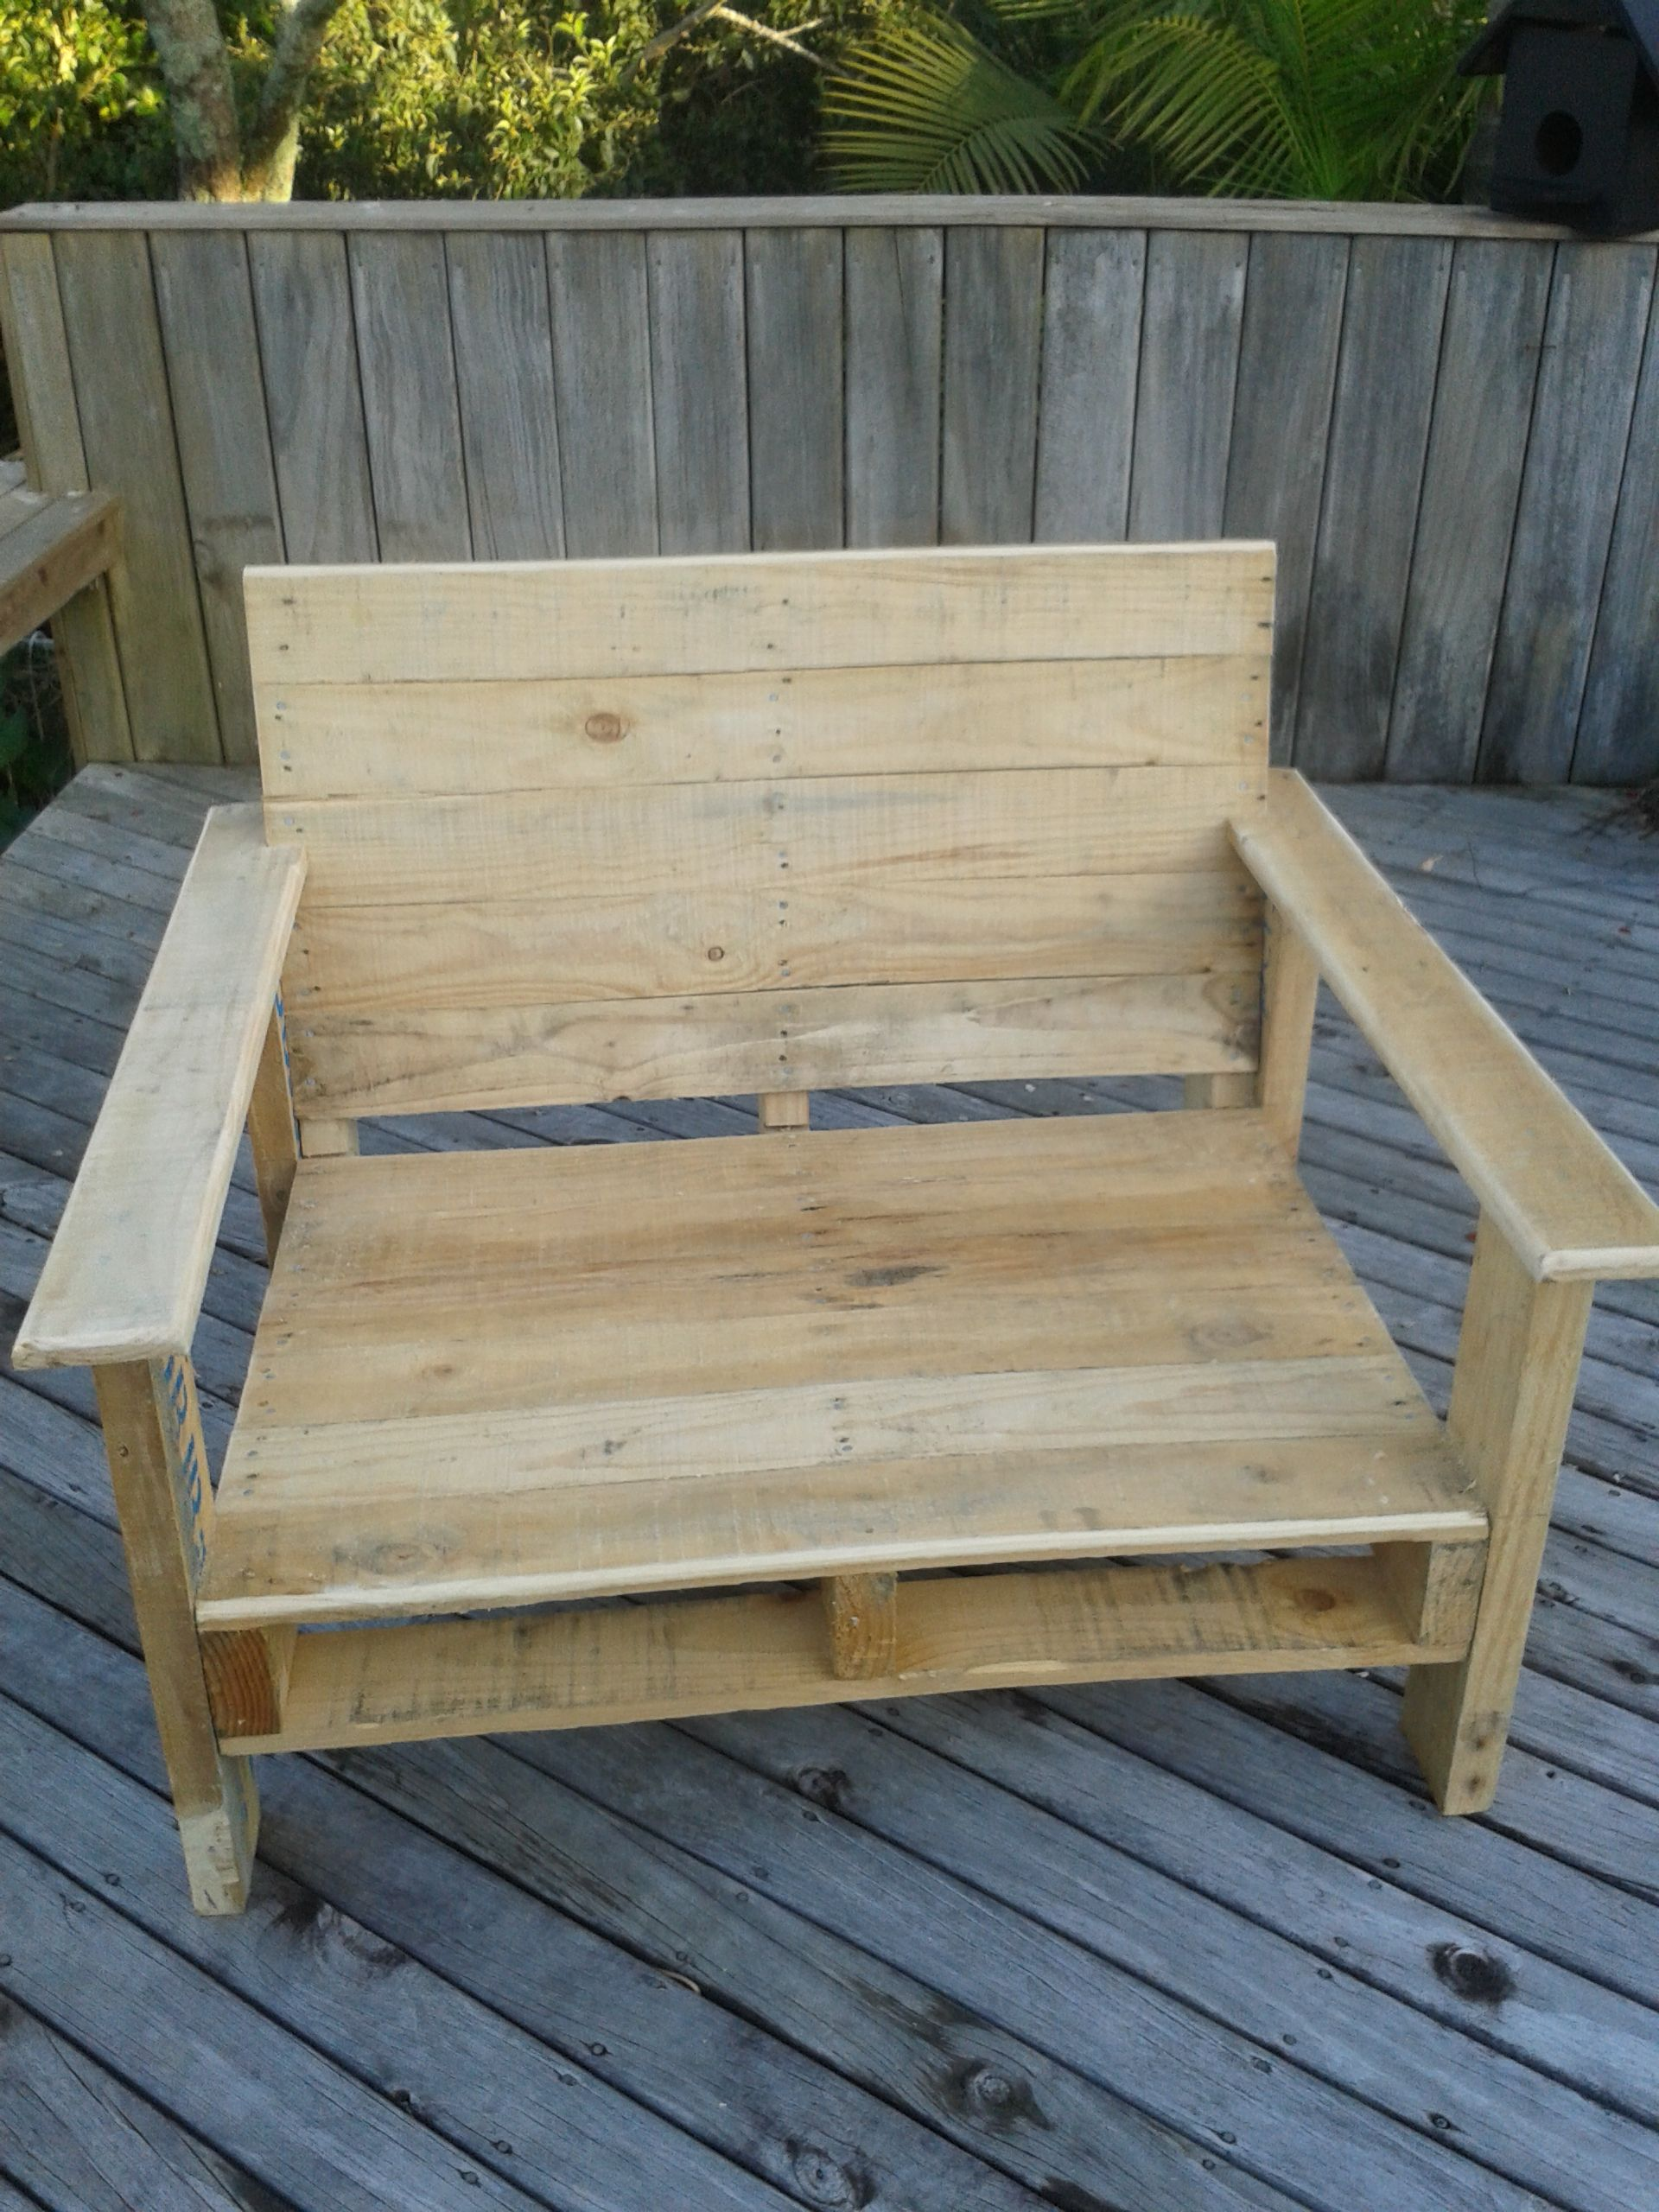 Pin By Jokeijers On Pallets - Pinterest - Pallets, Diy